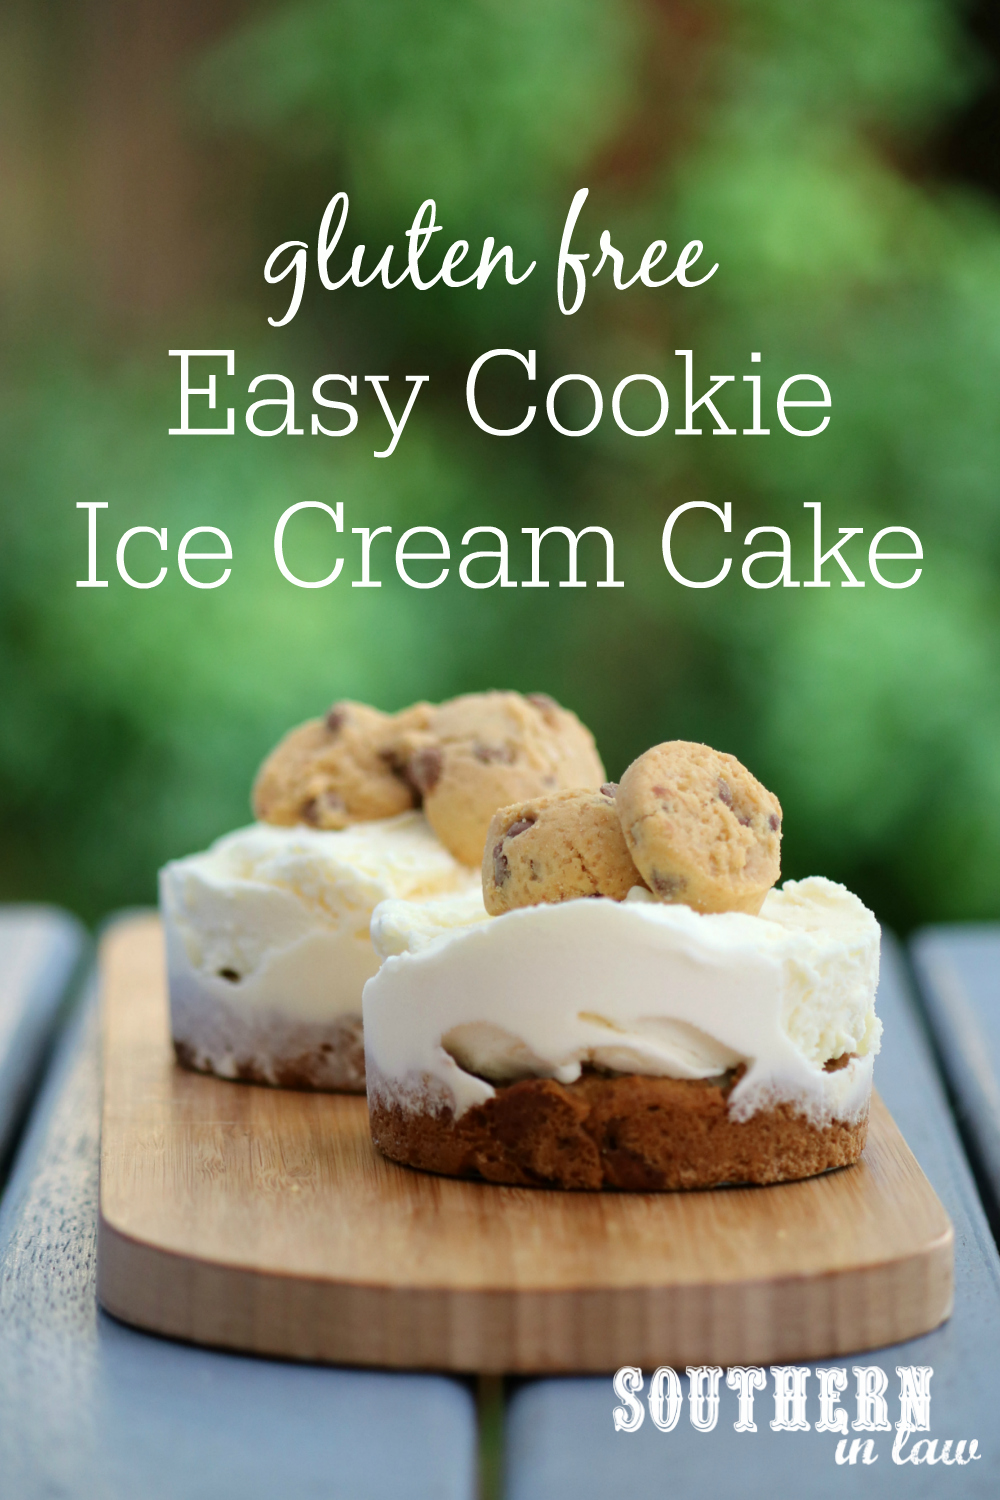 Southern In Law Recipe Easy Cookie Ice Cream Cake Gluten Free